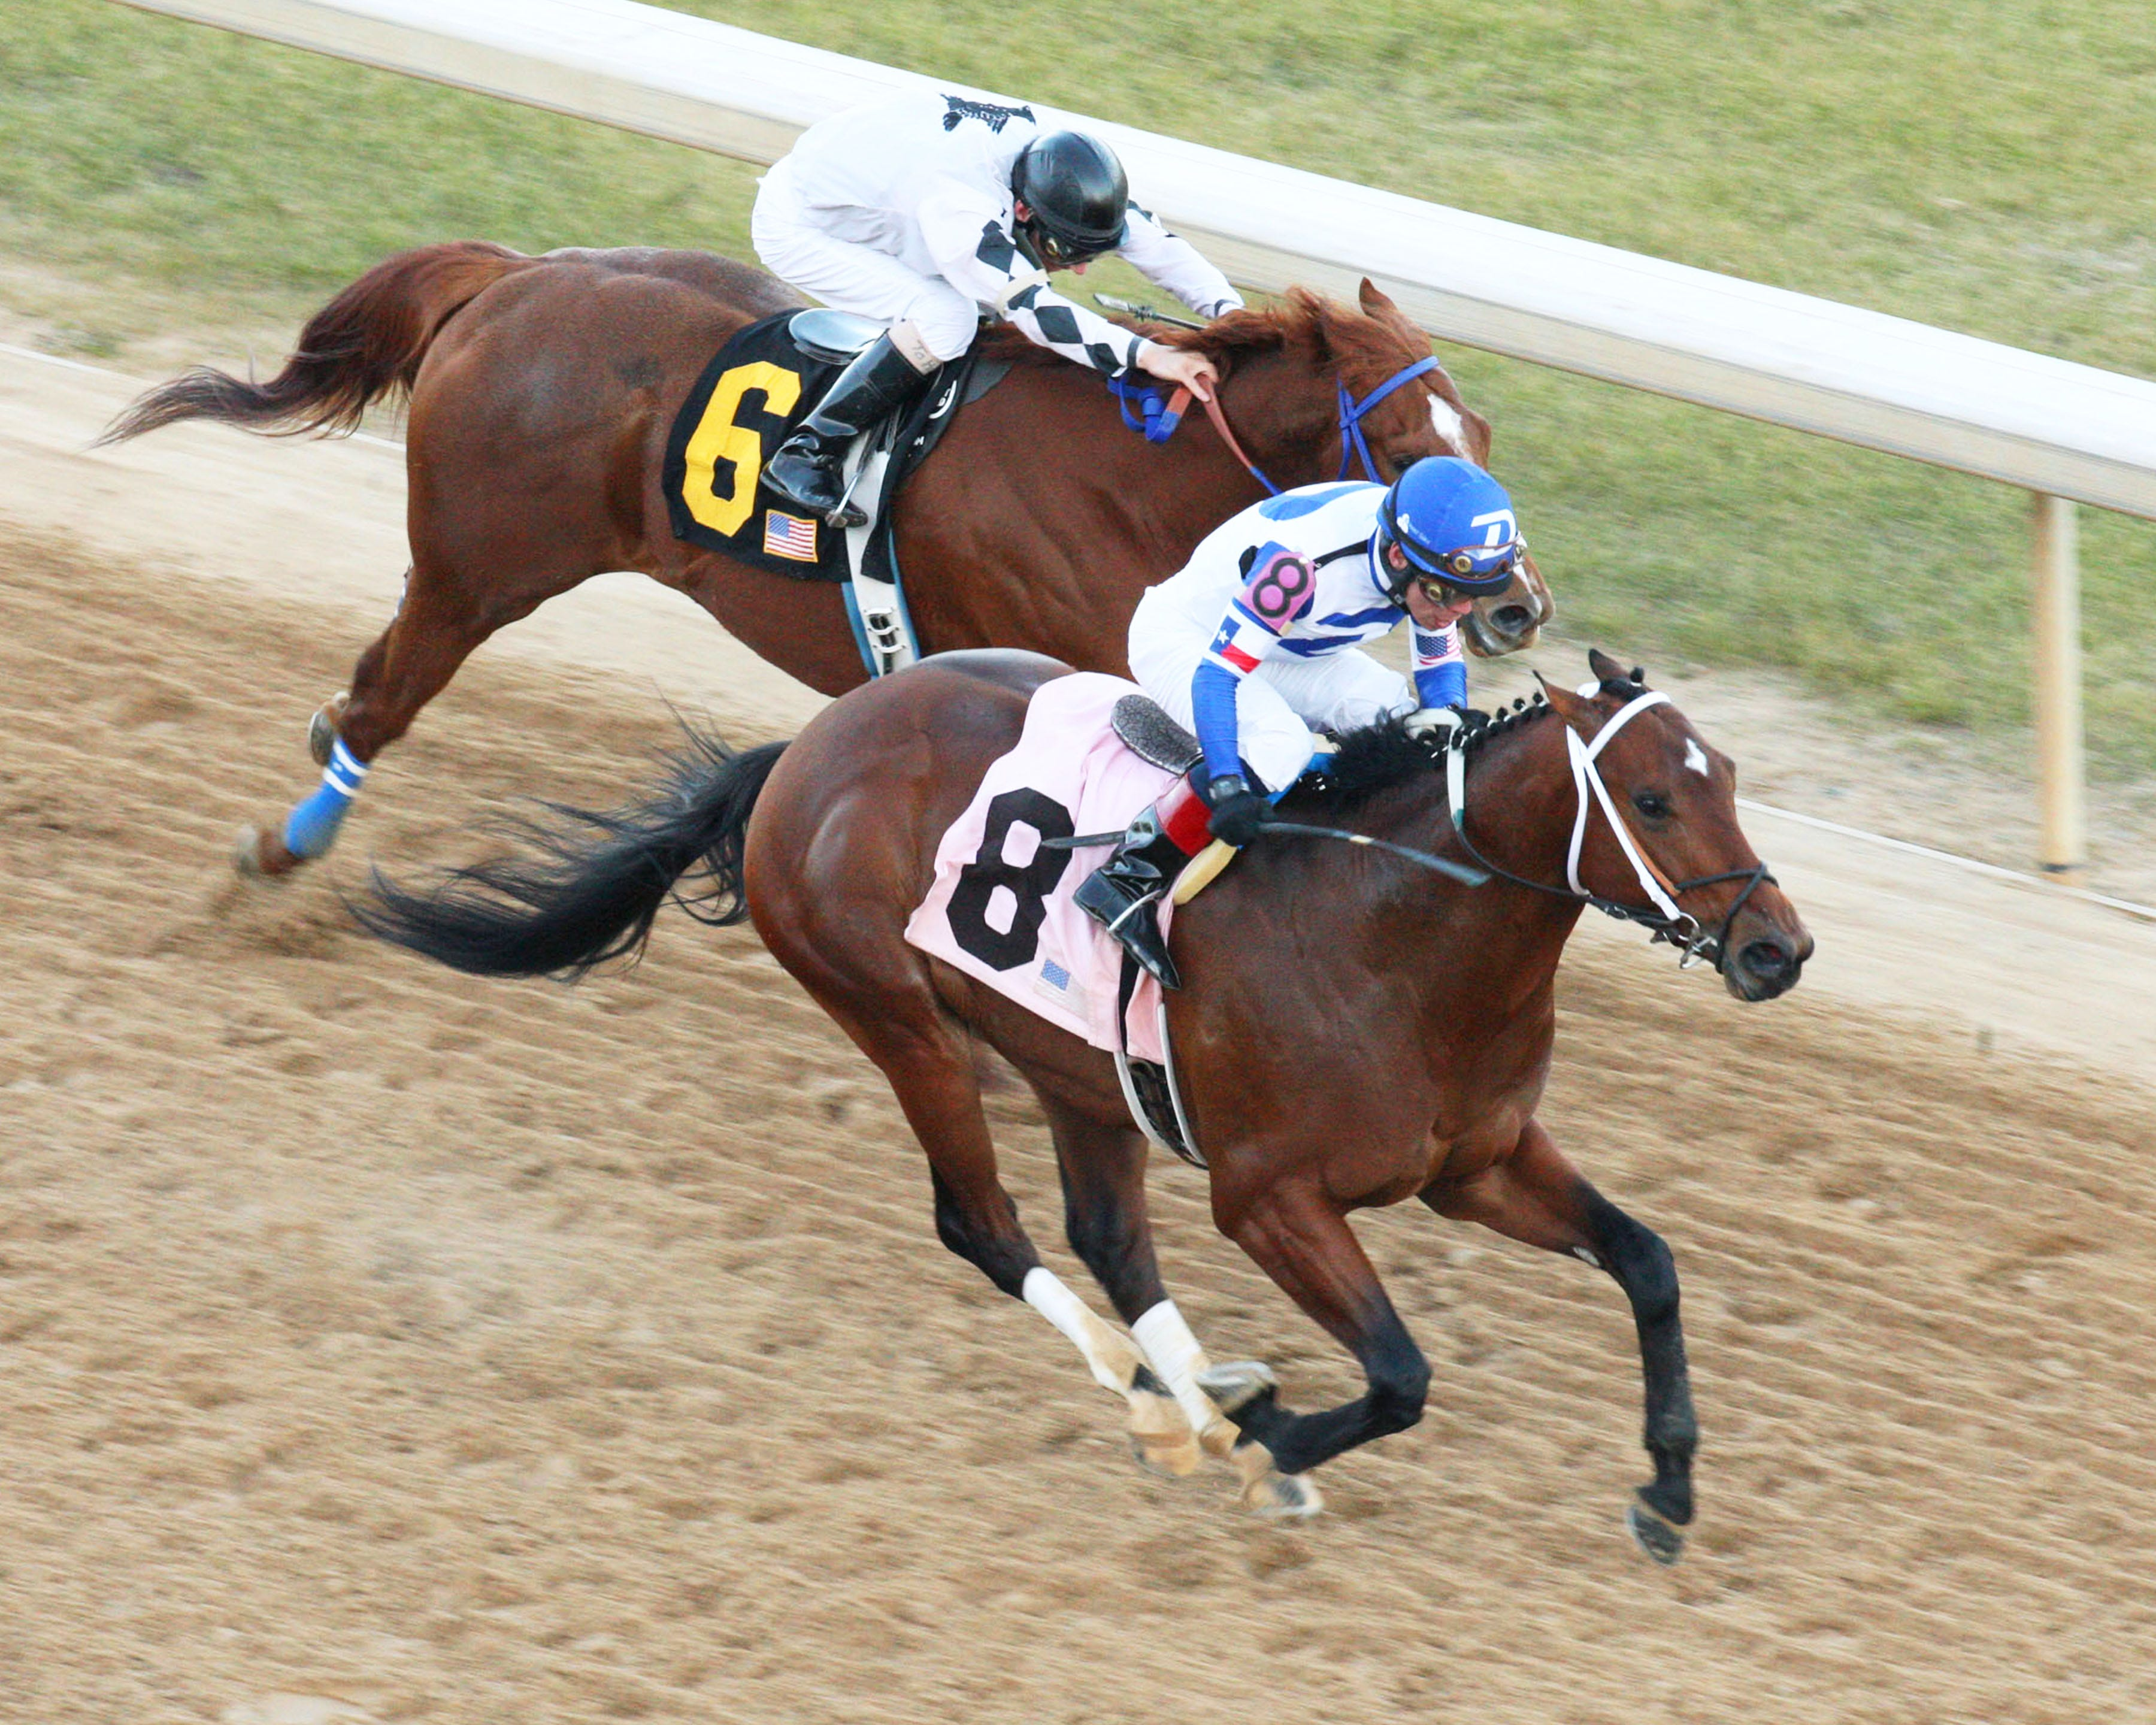 Route du Kentucky Derby/Kentucky Oaks 2014 1390278680000-TANZANITE-CAT---The-Smarty-Jones---Seventh-Running---01-20-14---R08---OP---Aerial